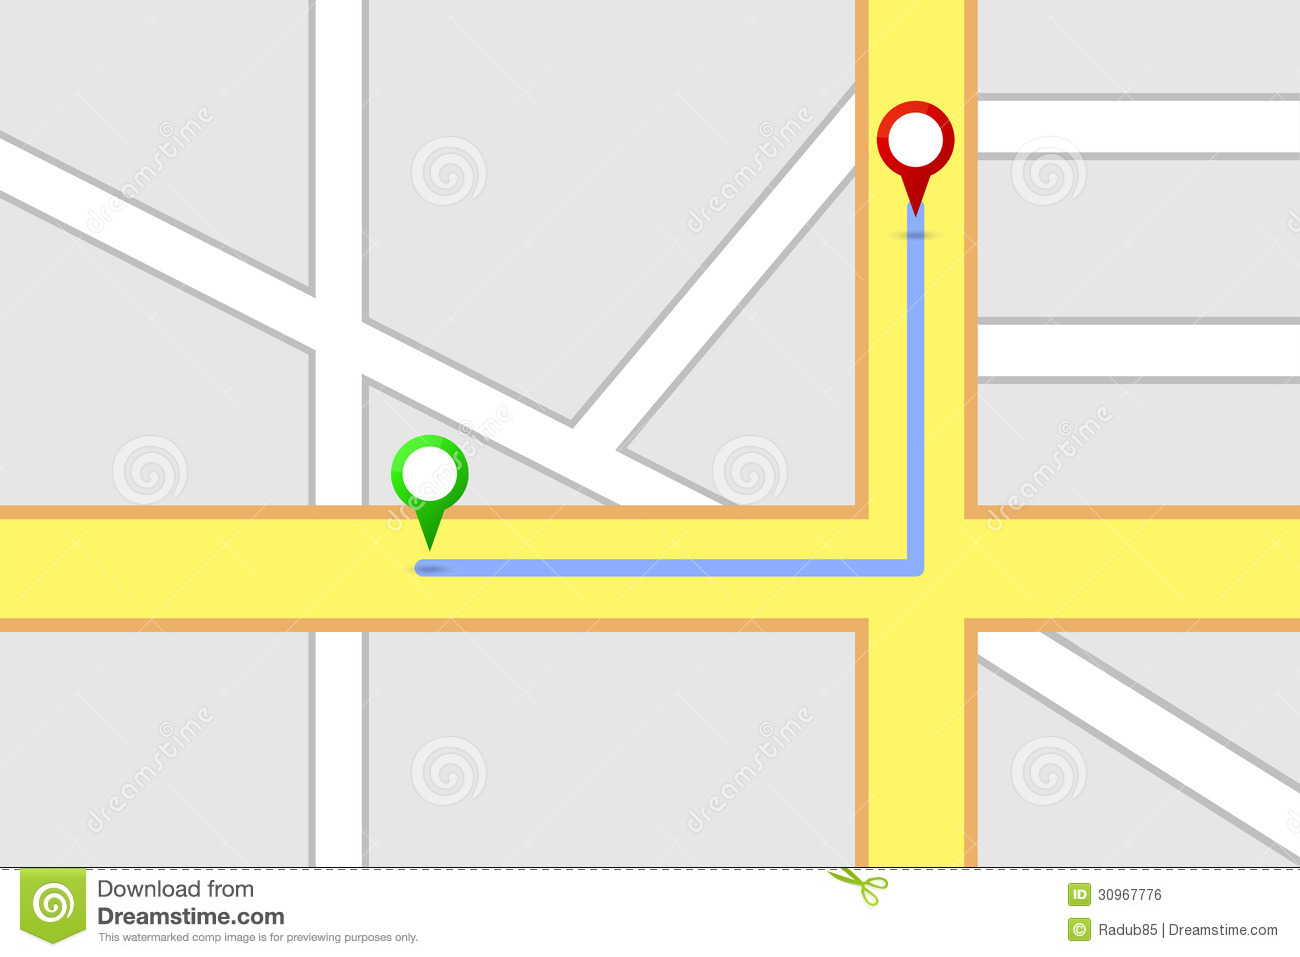 Route map clipart.